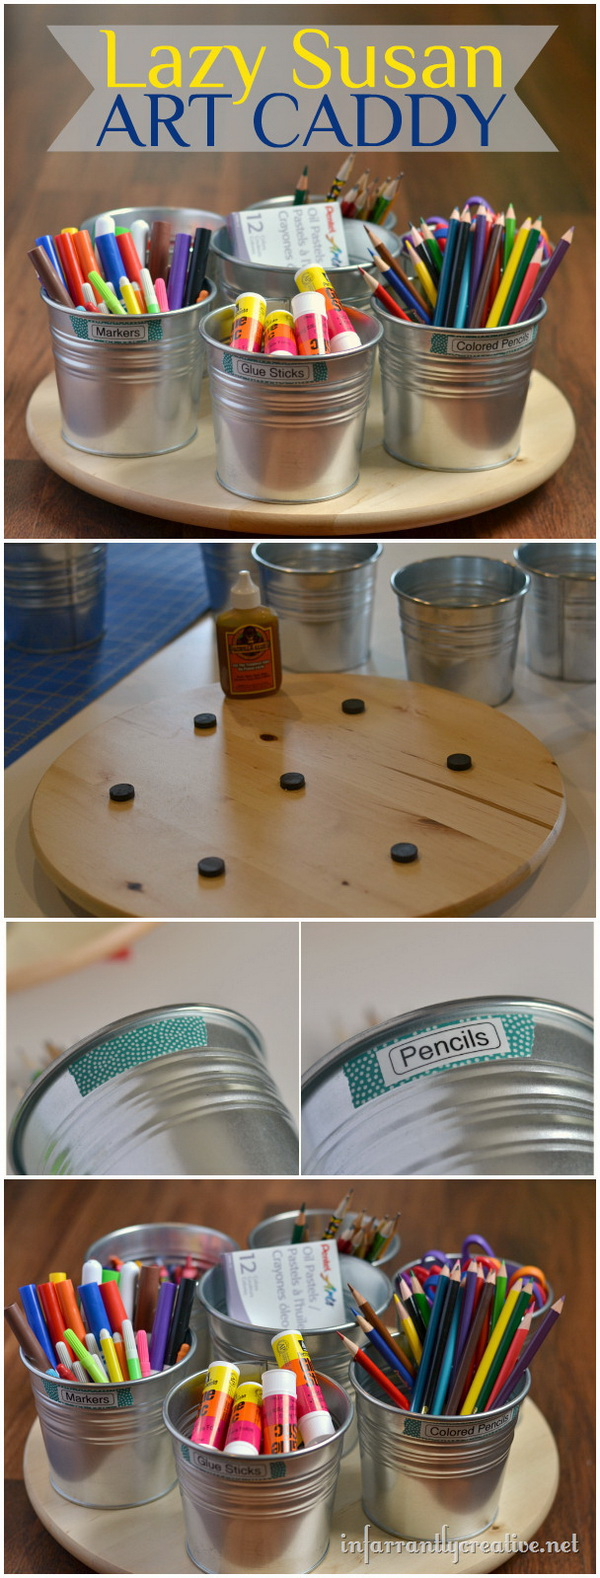 Spinning Lazy Susan Art Caddy. This spinning lazy susan art caddy is great for your craft table to store all of the craft supplies.